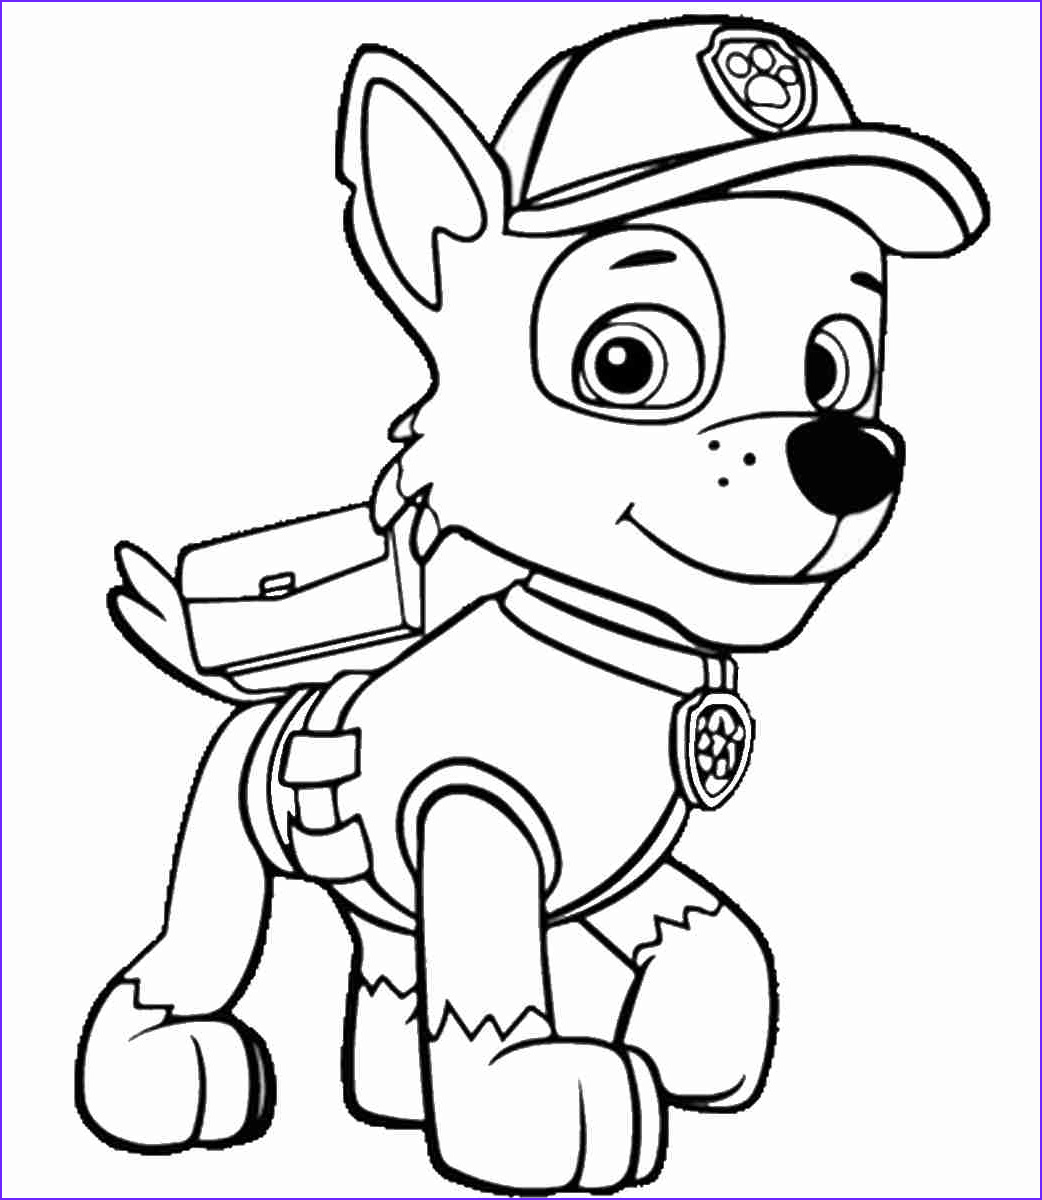 chase coloring page encourage improved lihatsinopsis and also 18